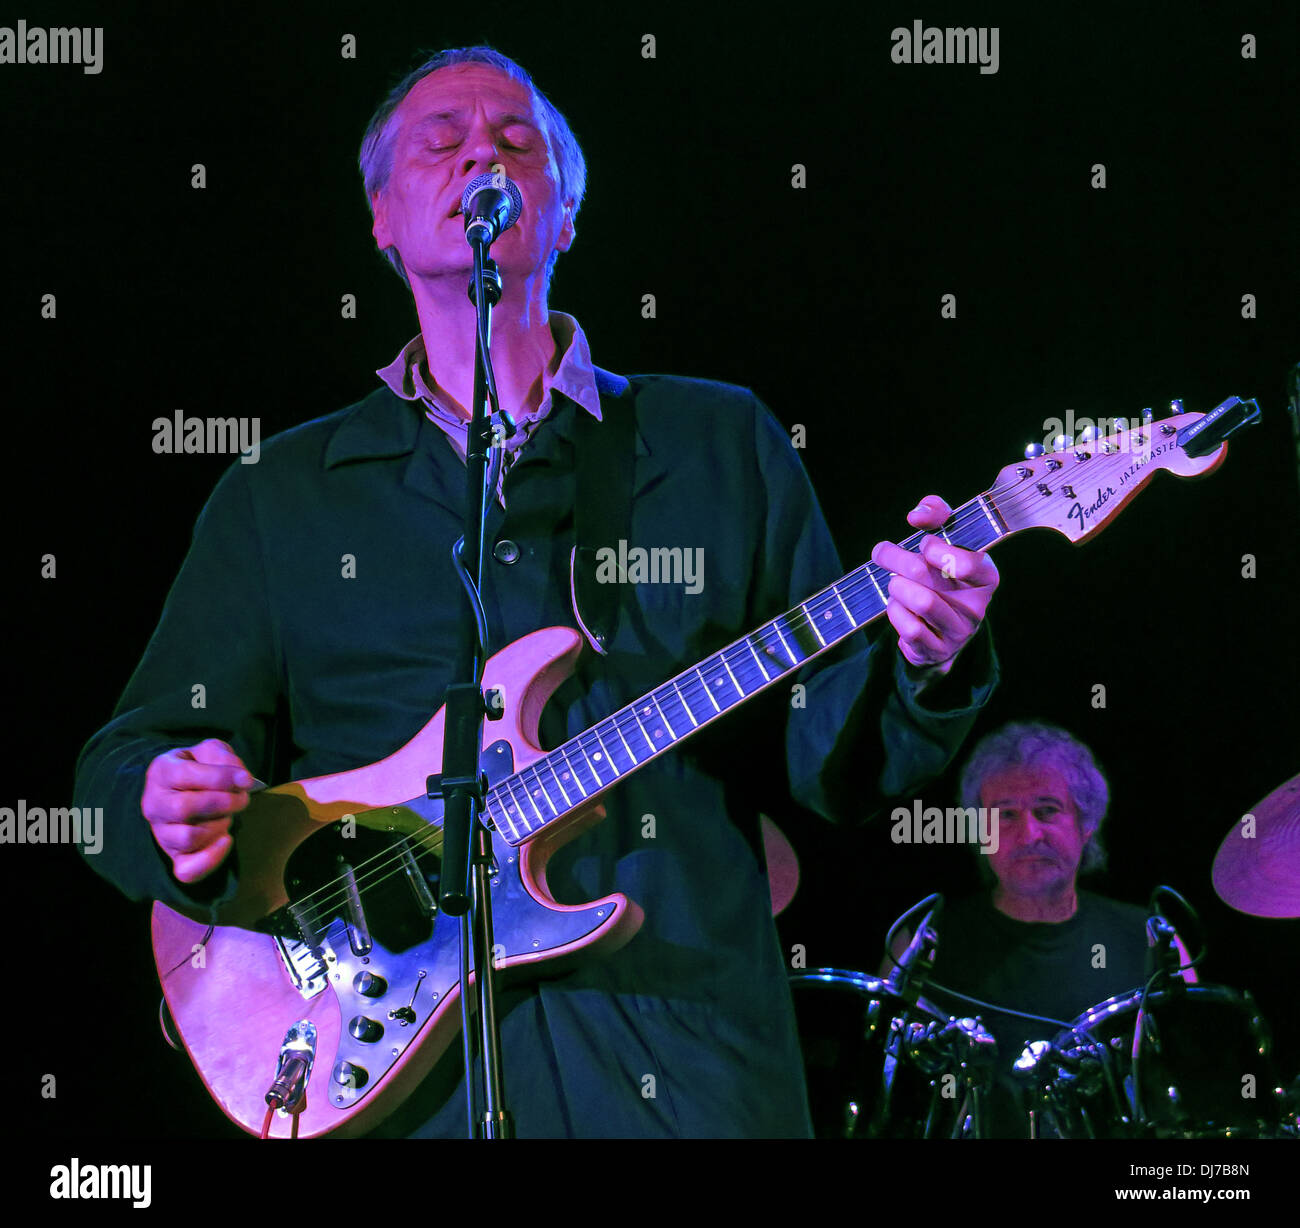 New York based Television, live at the Manchester Academy November 17th 2013 - Tom Verlaine with Fender jazzmaster guitar - Stock Image